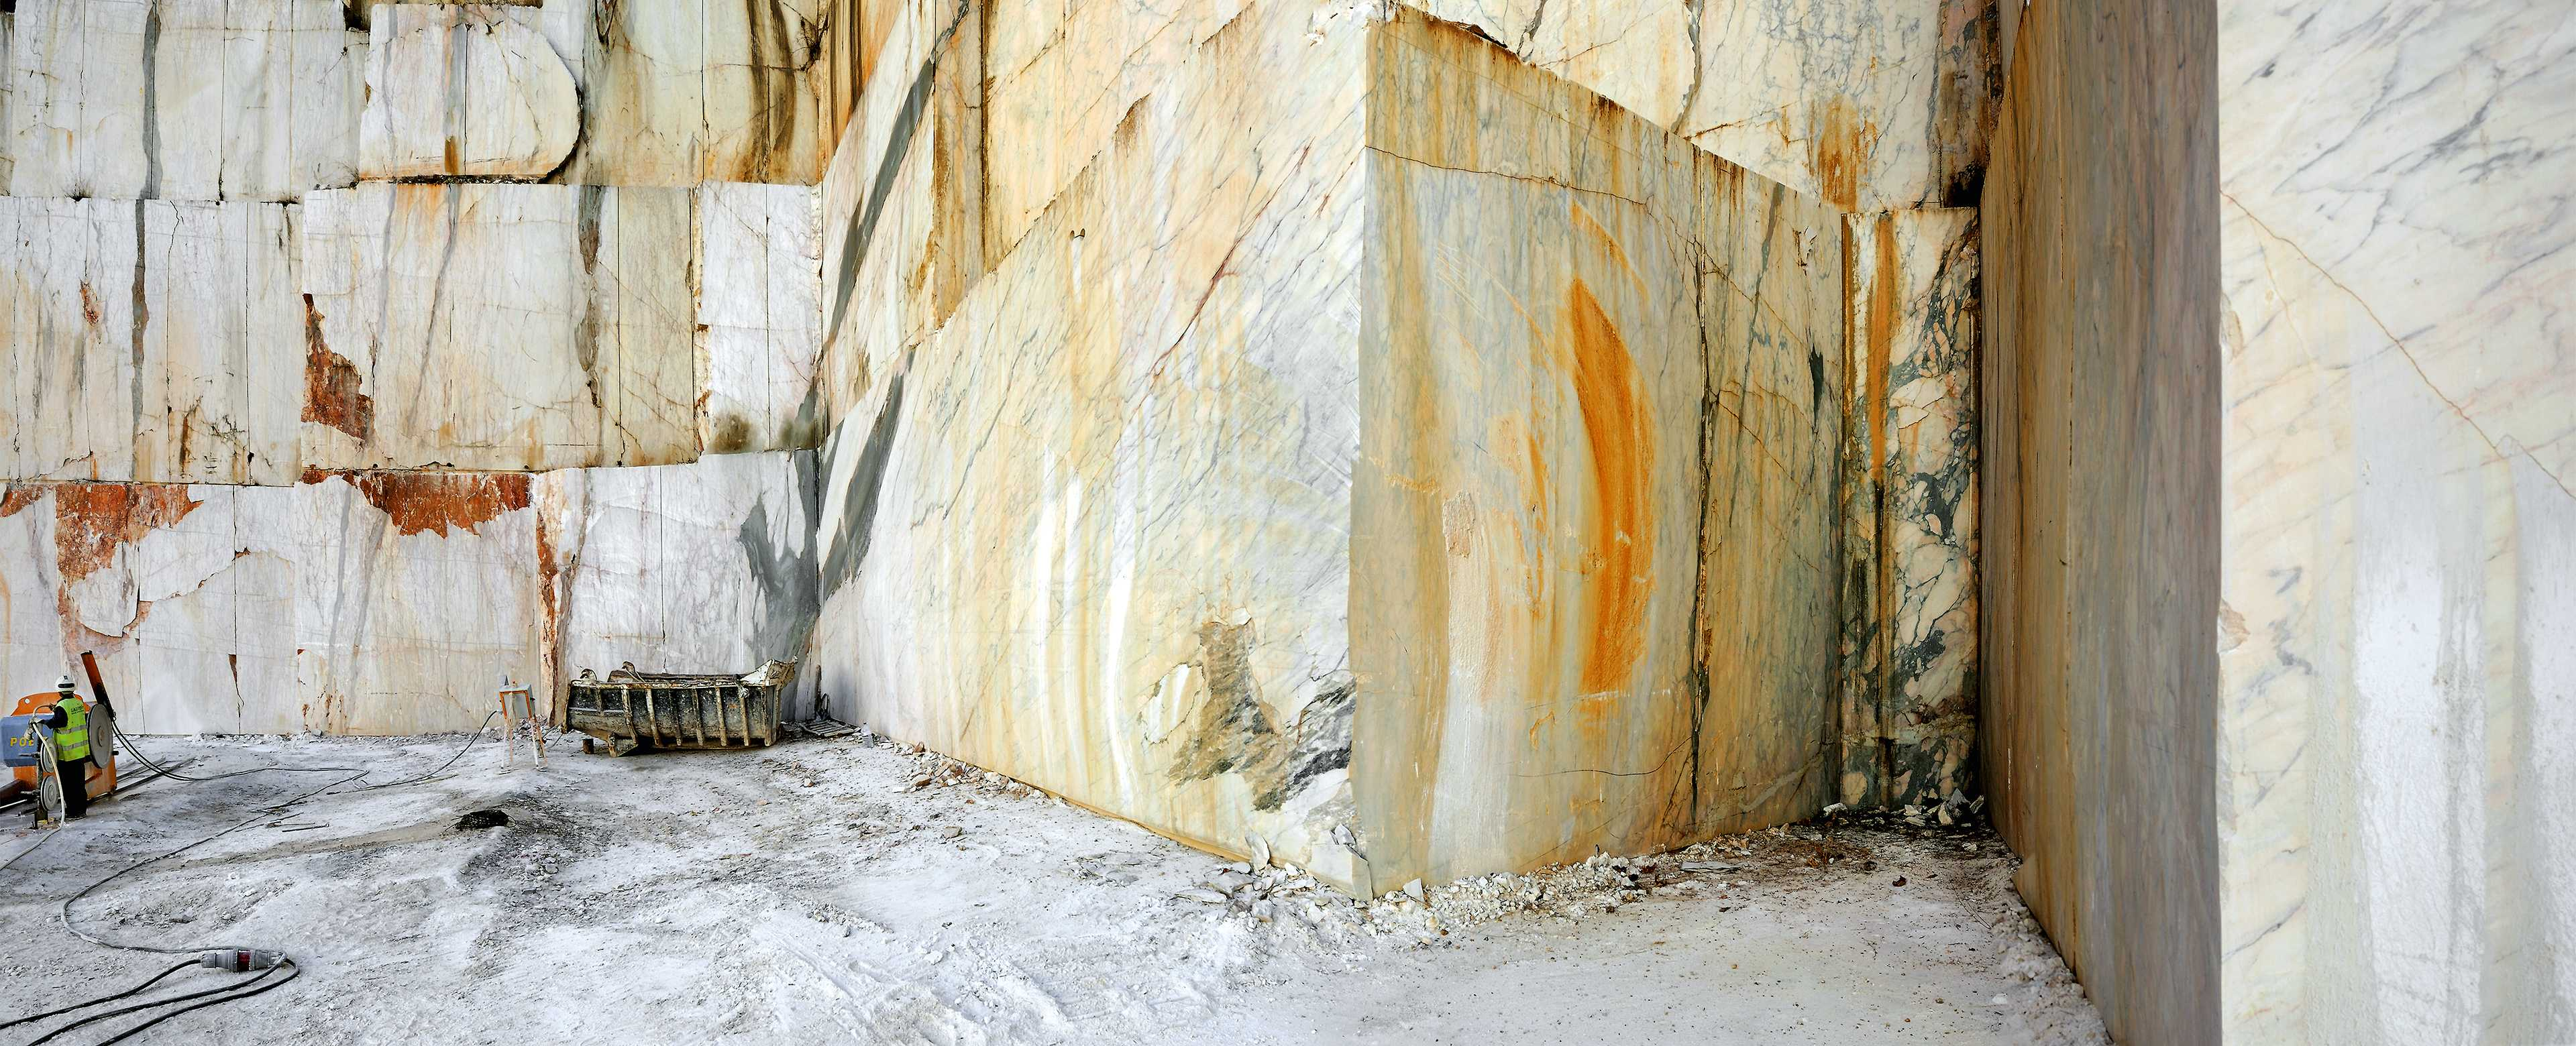 Pedreiras, Portrait of a Quarry  - 6 13 49